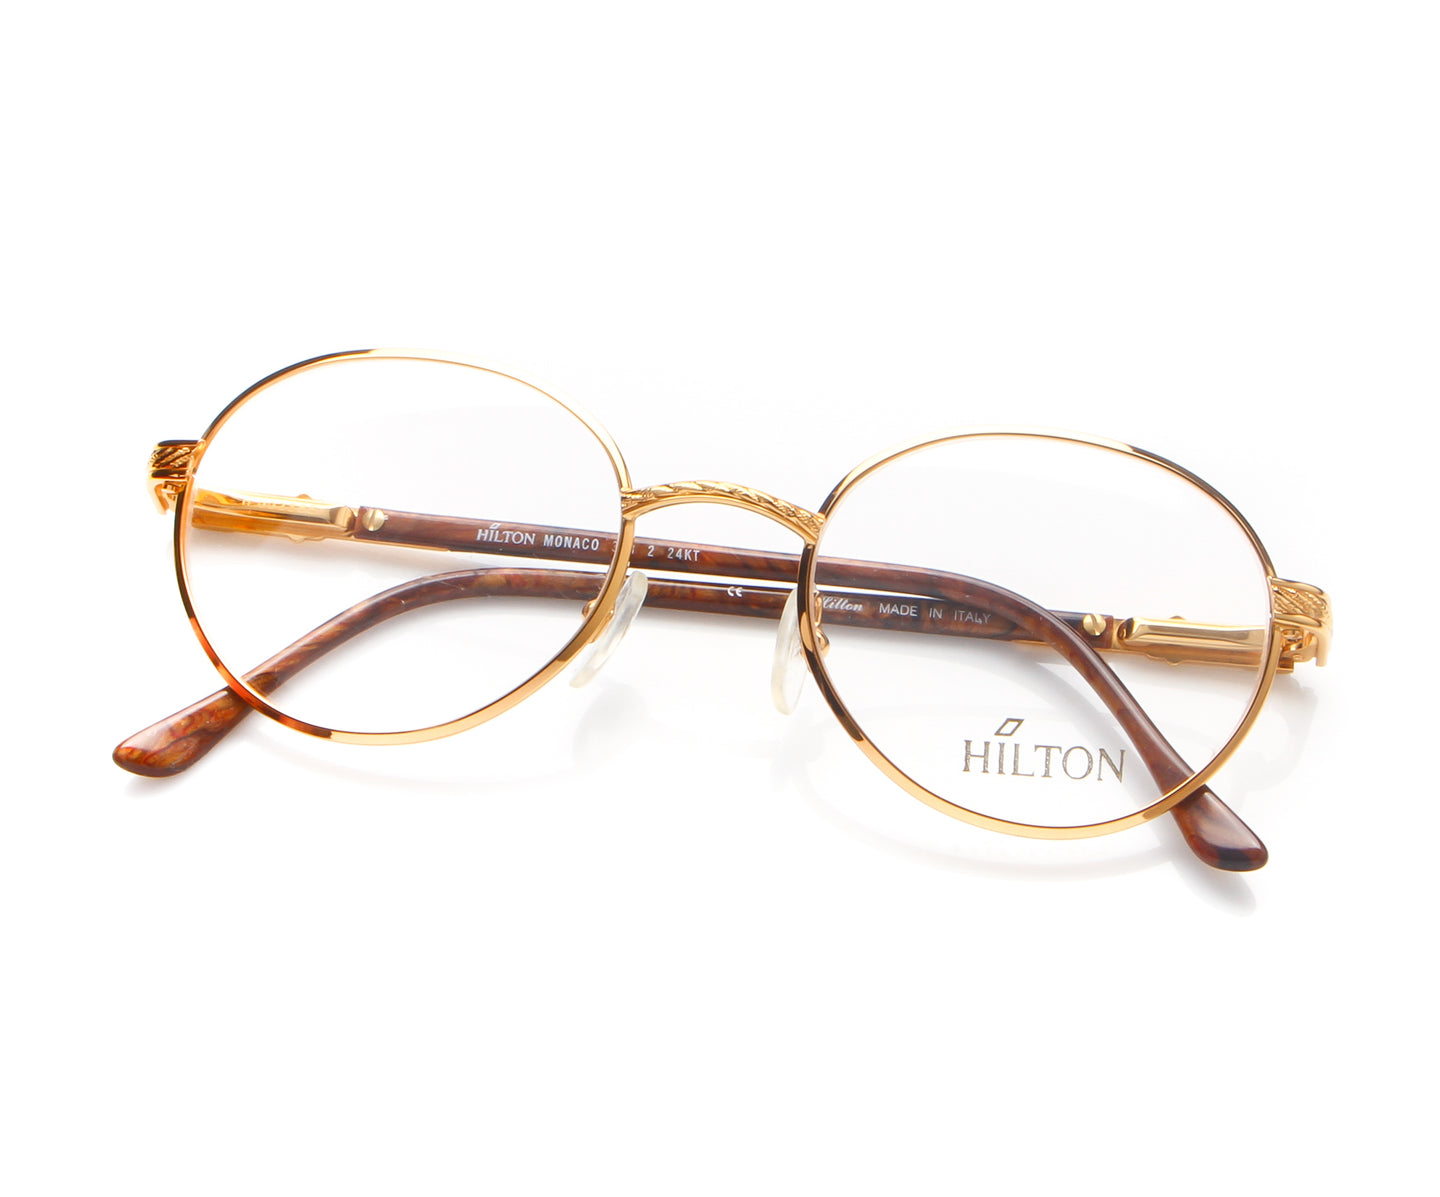 Vintage Hilton Monaco 303 2 24KT Thumbnail, Hilton , glasses frames, eyeglasses online, eyeglass frames, mens glasses, womens glasses, buy glasses online, designer eyeglasses, vintage sunglasses, retro sunglasses, vintage glasses, sunglass, eyeglass, glasses, lens, vintage frames company, vf